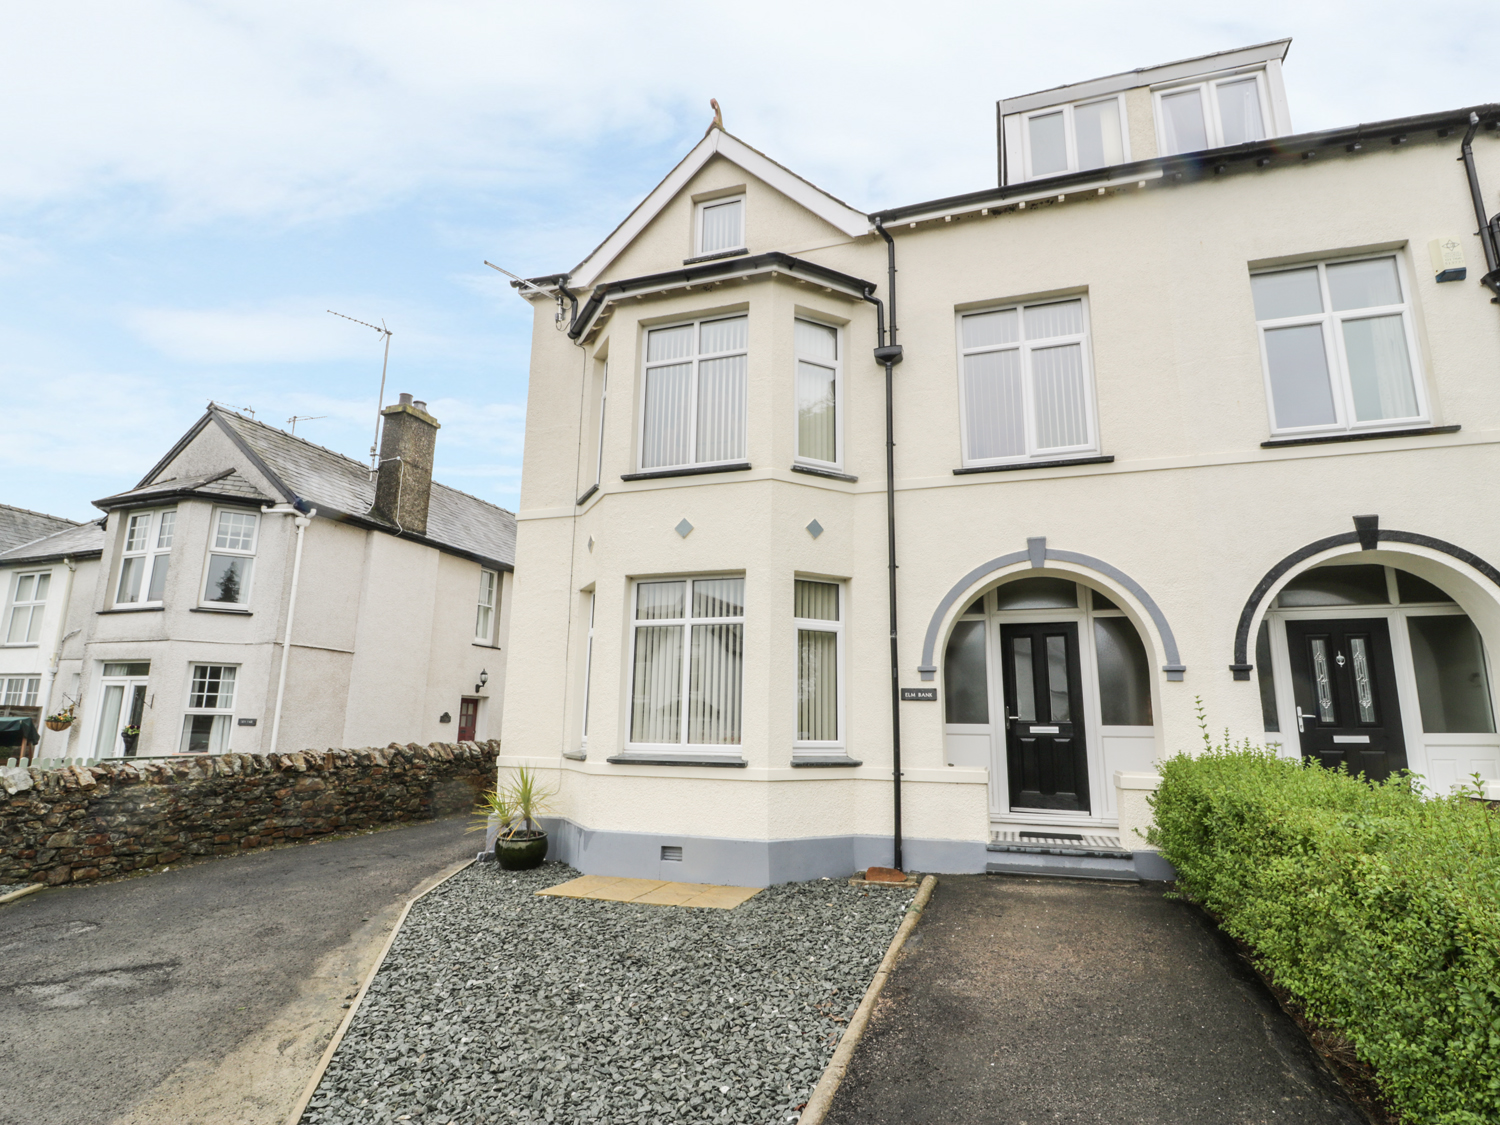 6 bedroom Cottage for rent in Abersoch